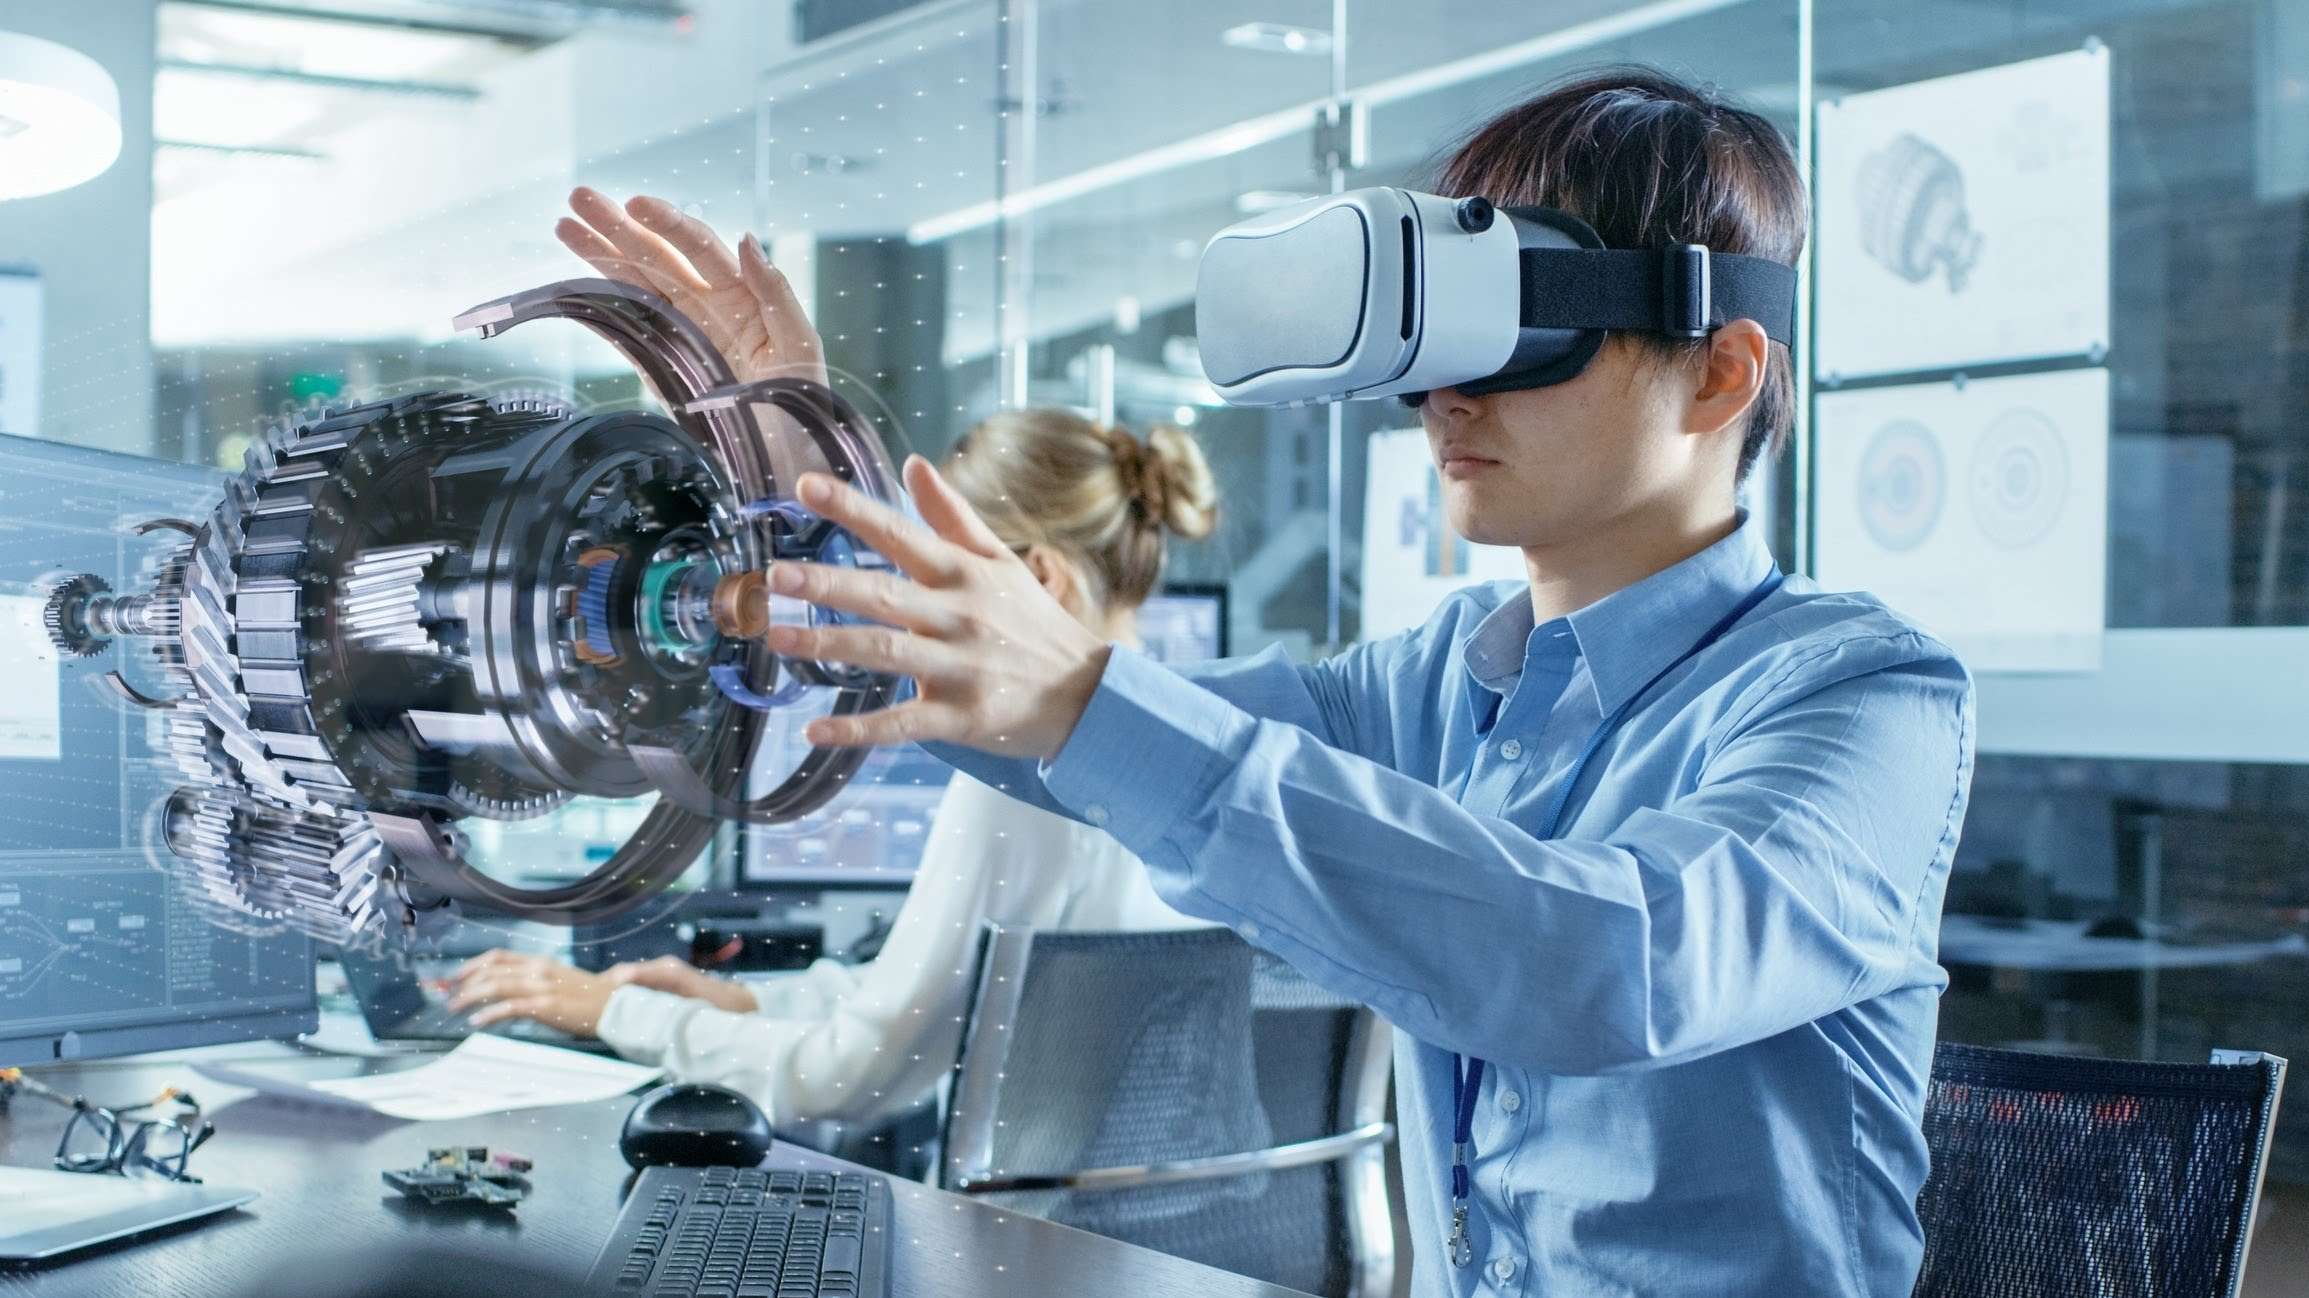 https://blog.thomasnet.com/augmented-reality-manufacturing